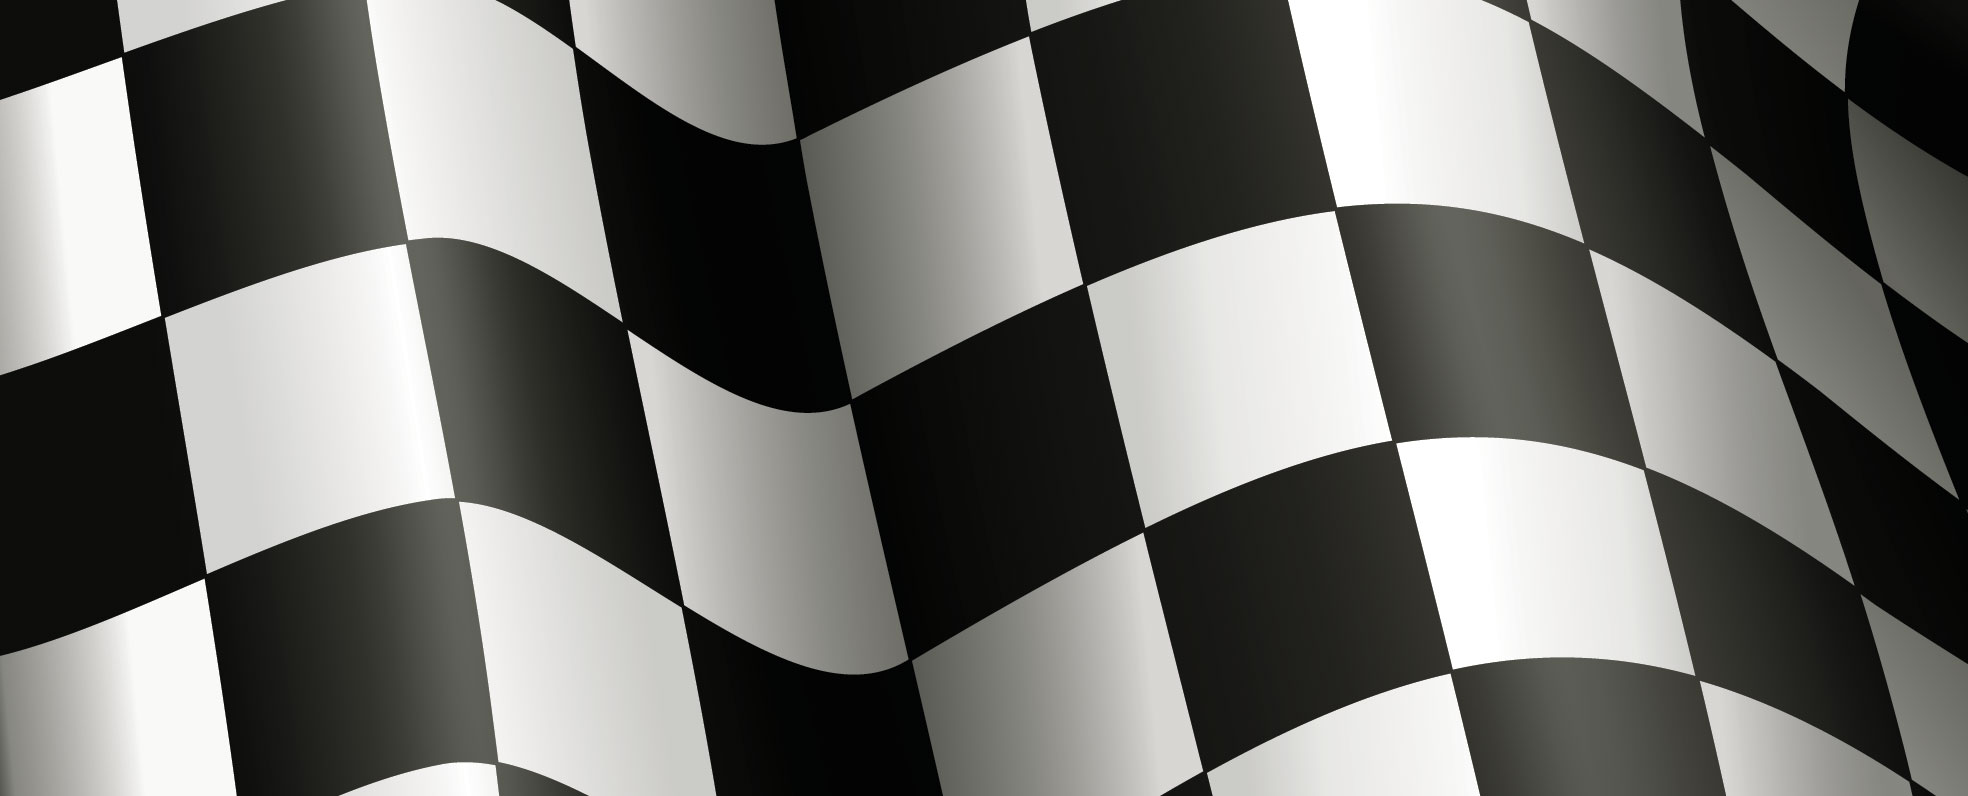 Checkered Flag Background Powerpoint Backgrounds For Free